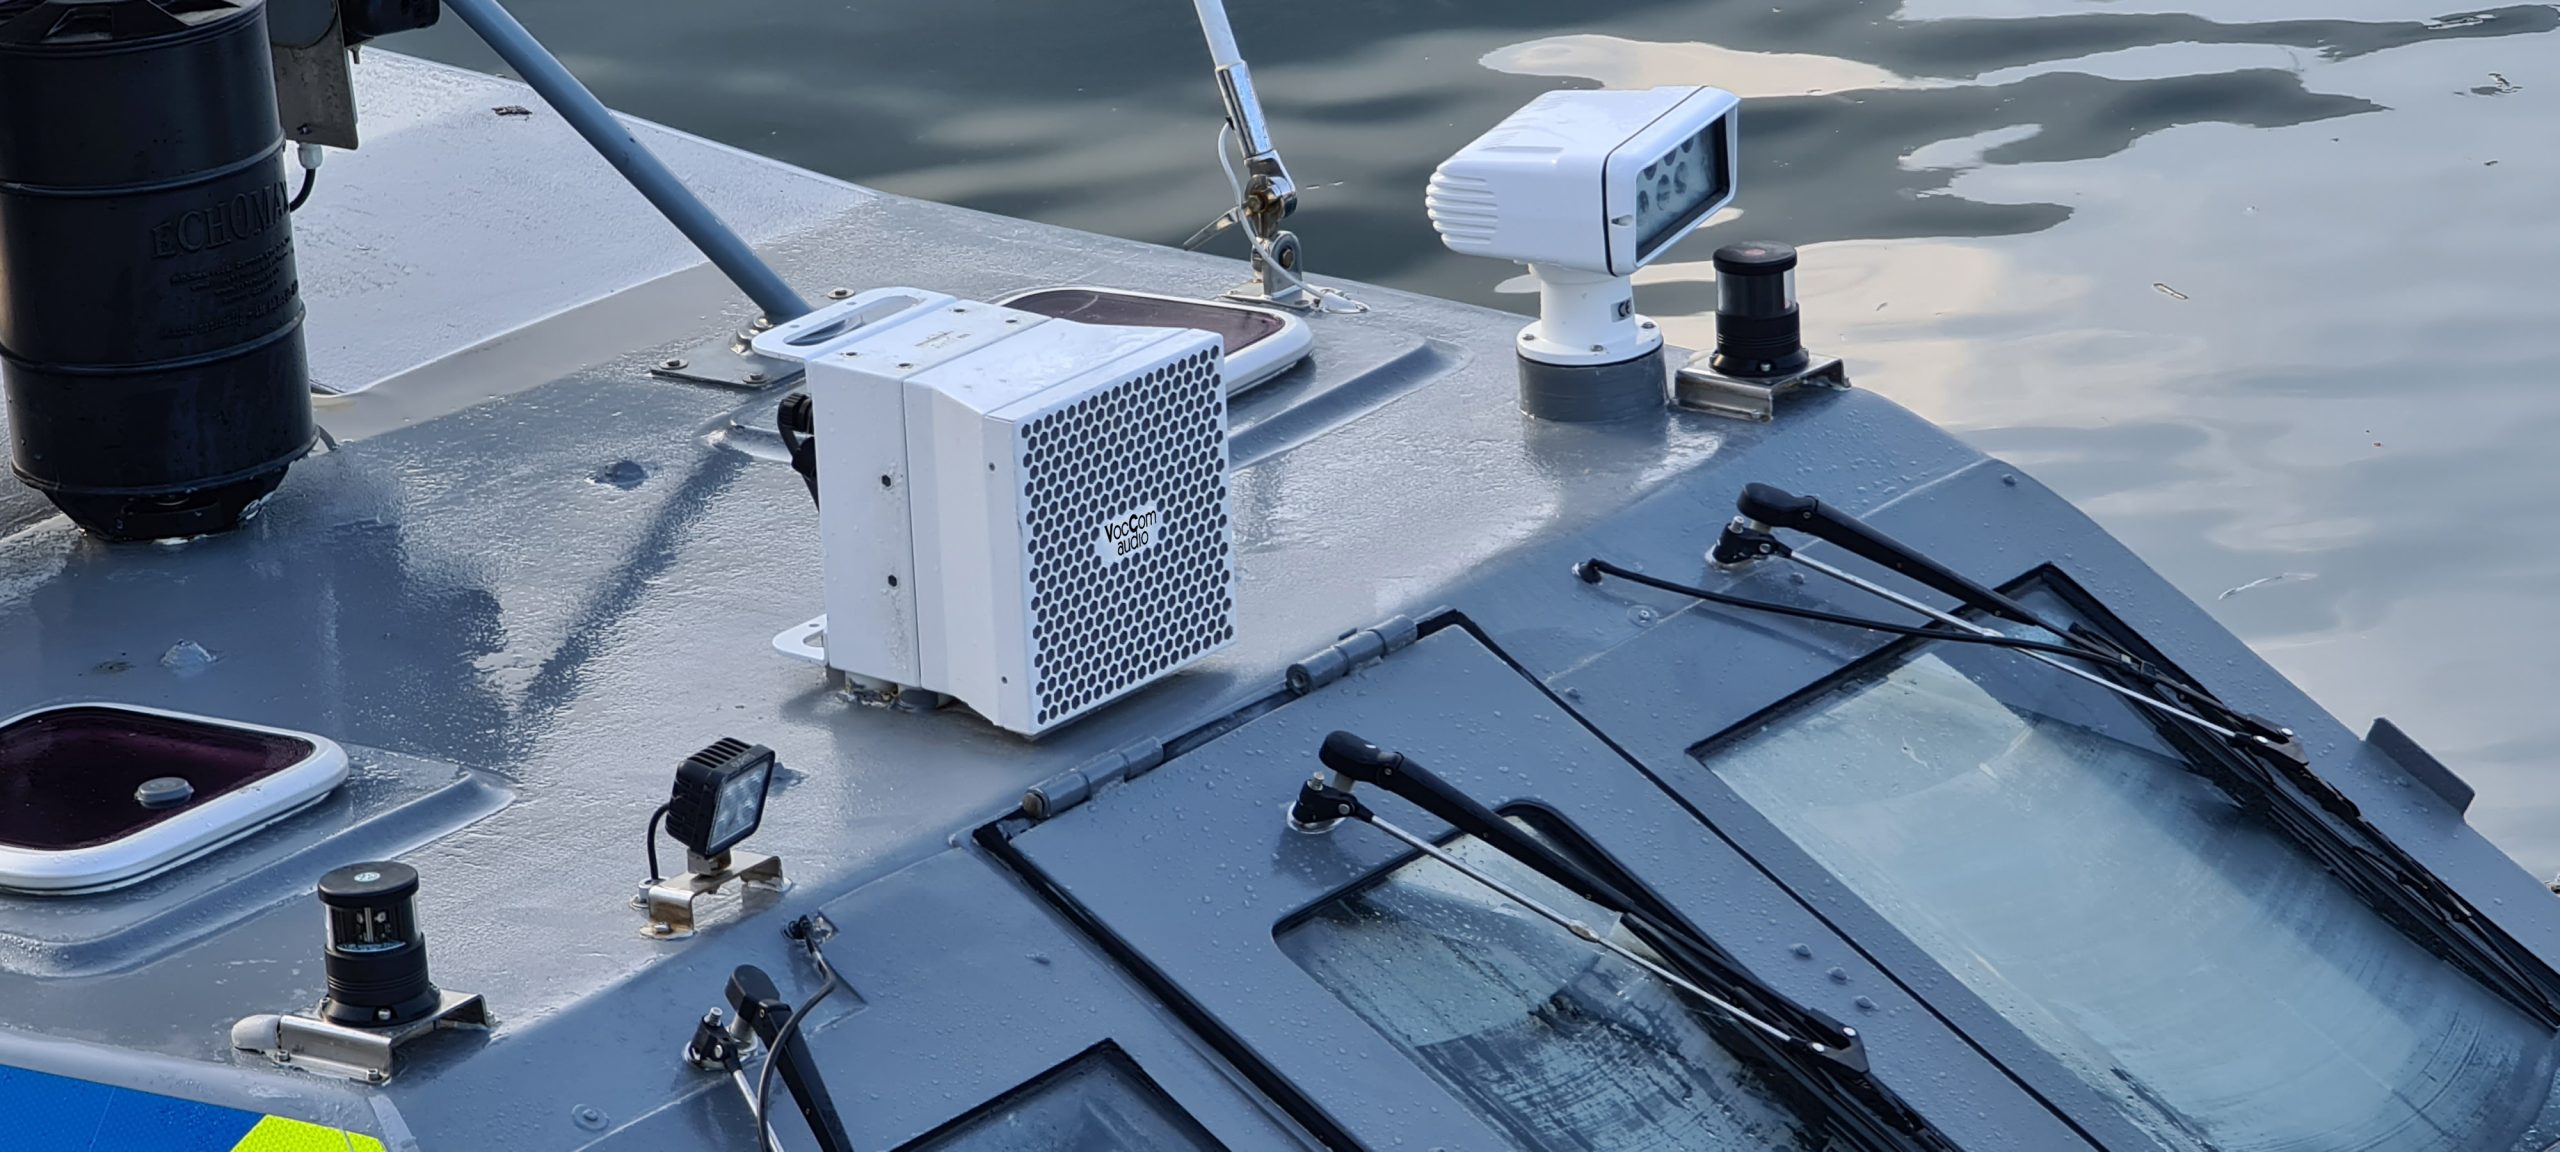 M-115 X Acoustic Hailing Device AHD Boat